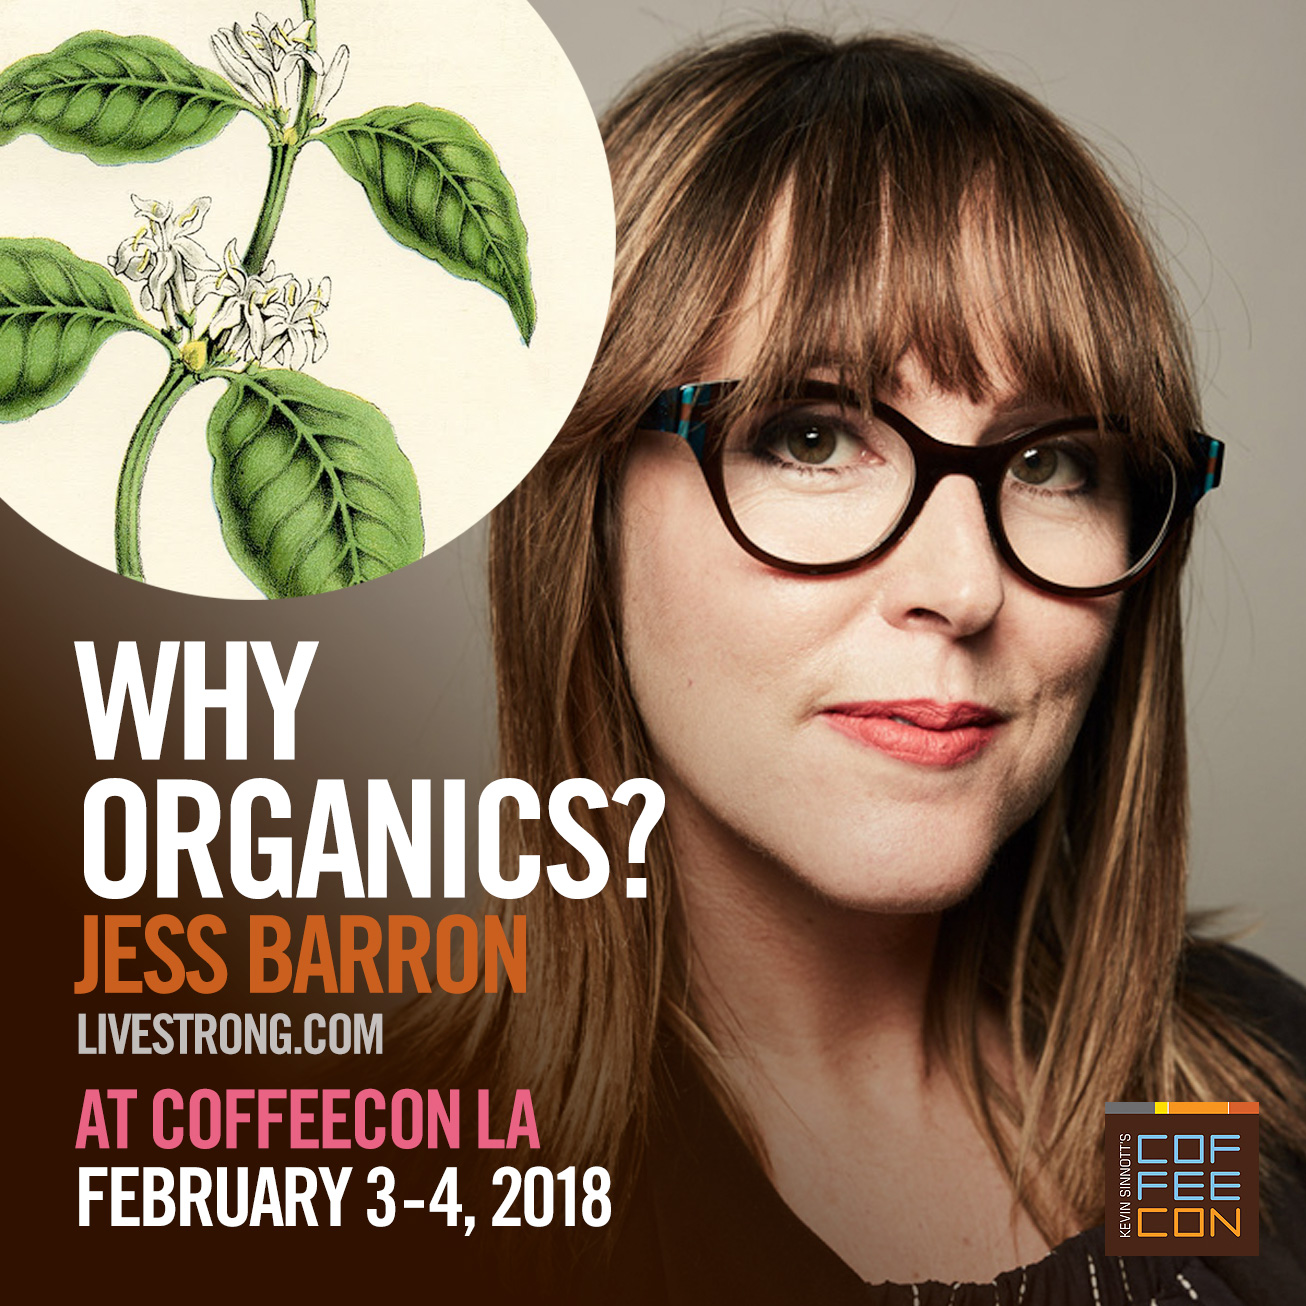 Why Organics with Jess Barron of Livestrong.com